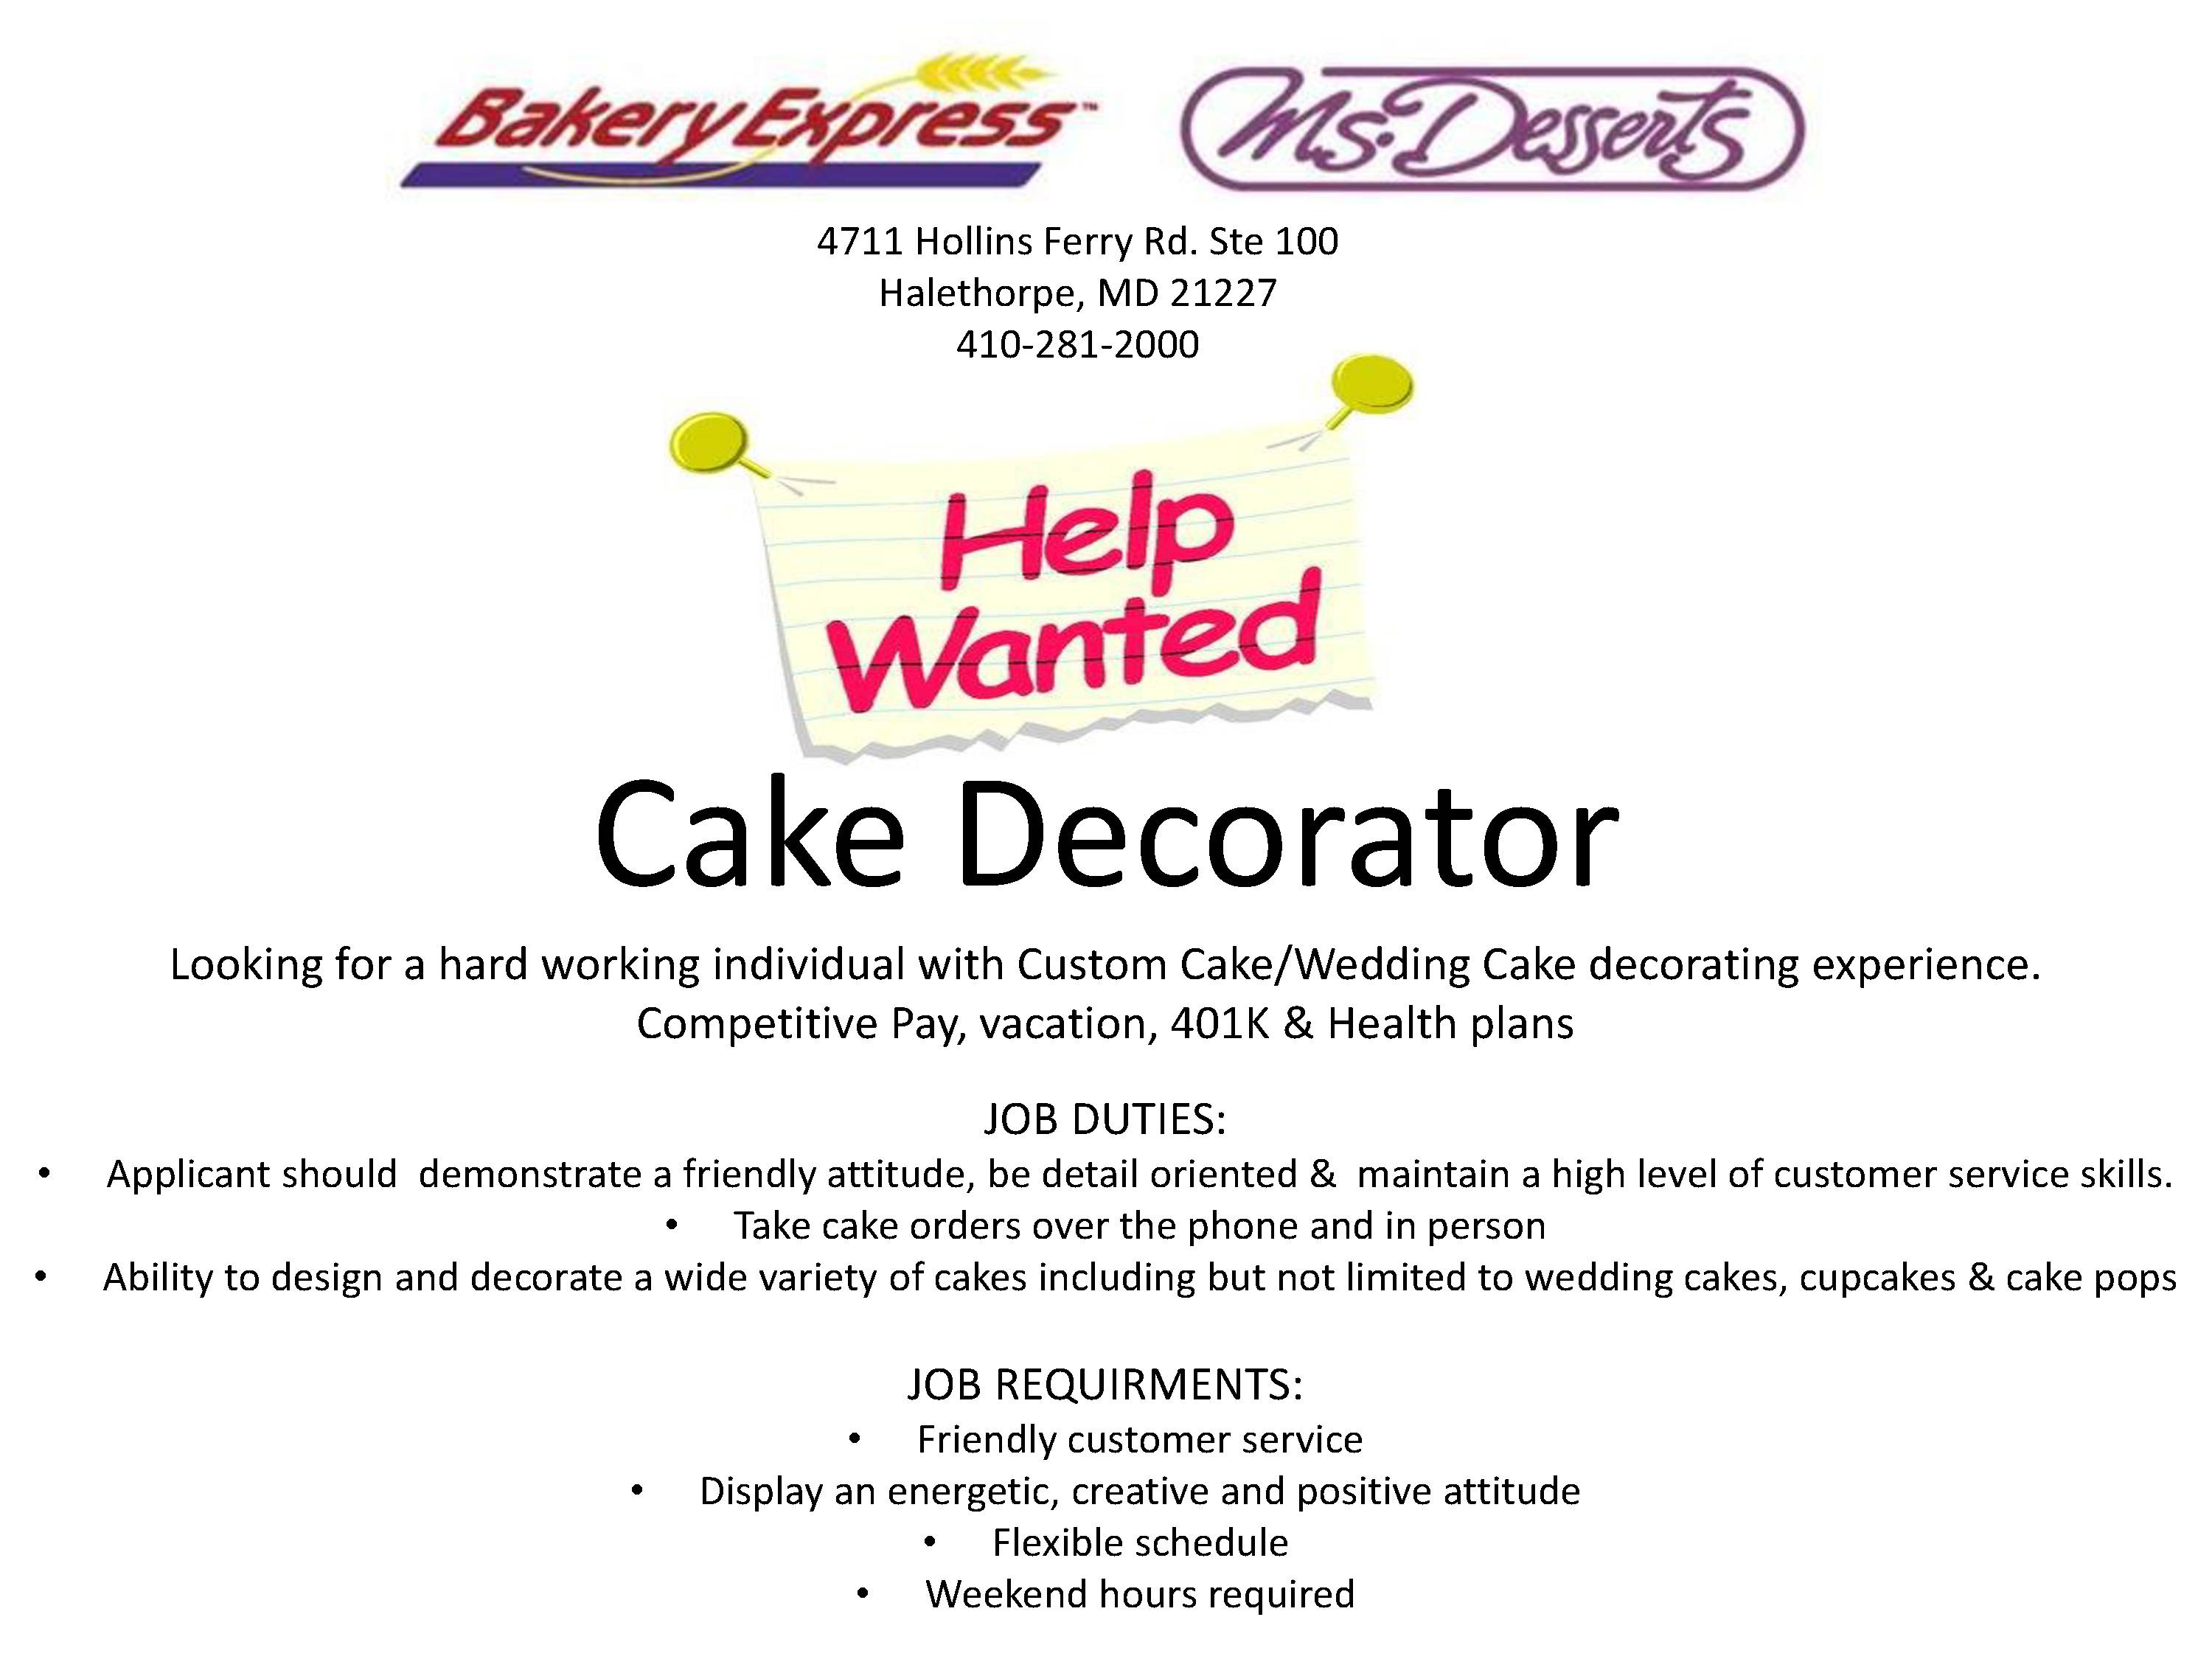 Cake Decorator Job Responsibilities : Cake Decorator Job Description List Iron Blog